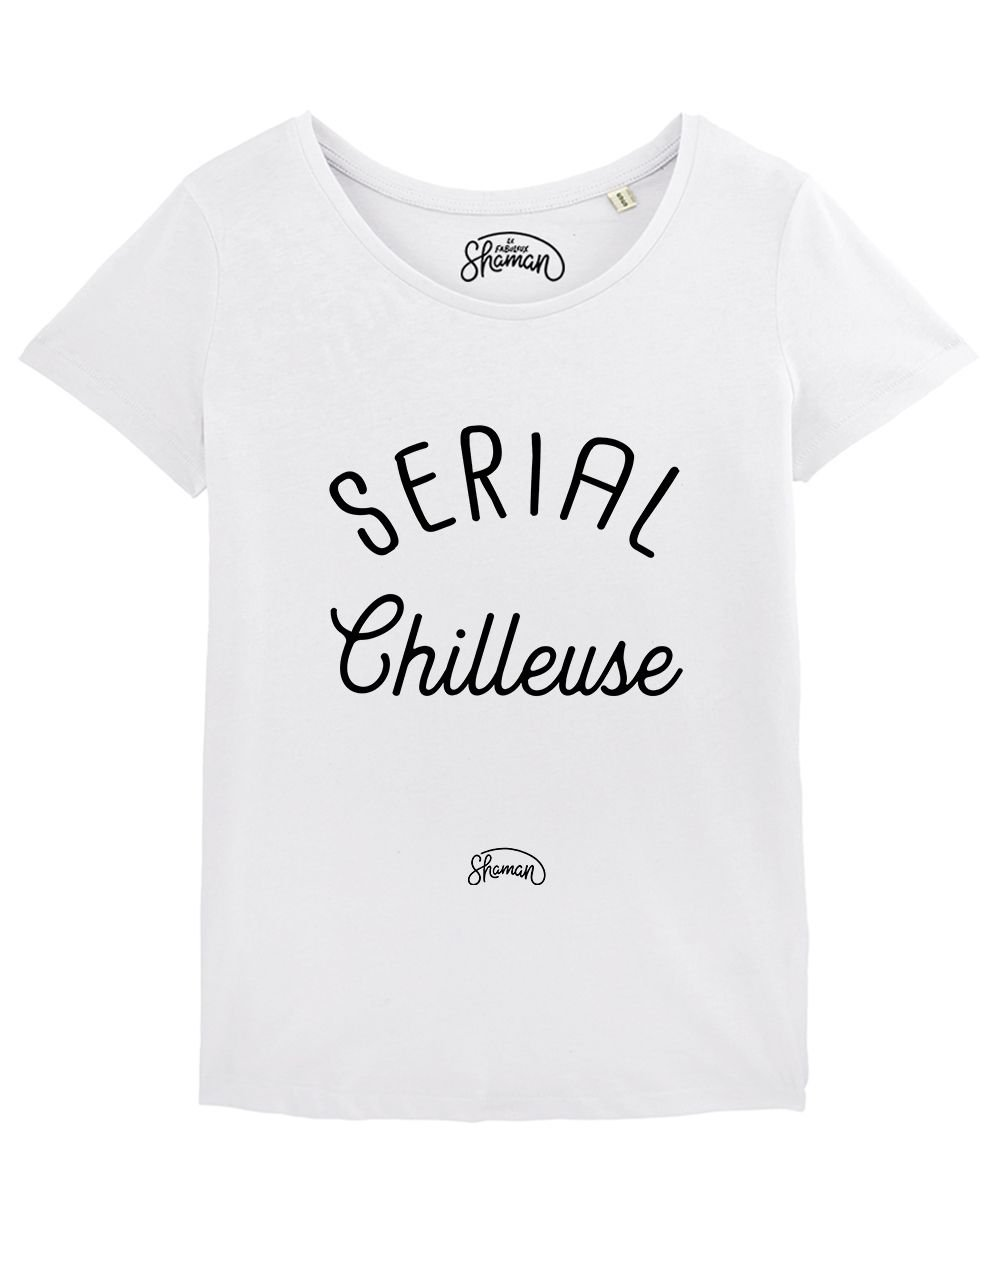 "T-shirt ""Serial chilleuse"""